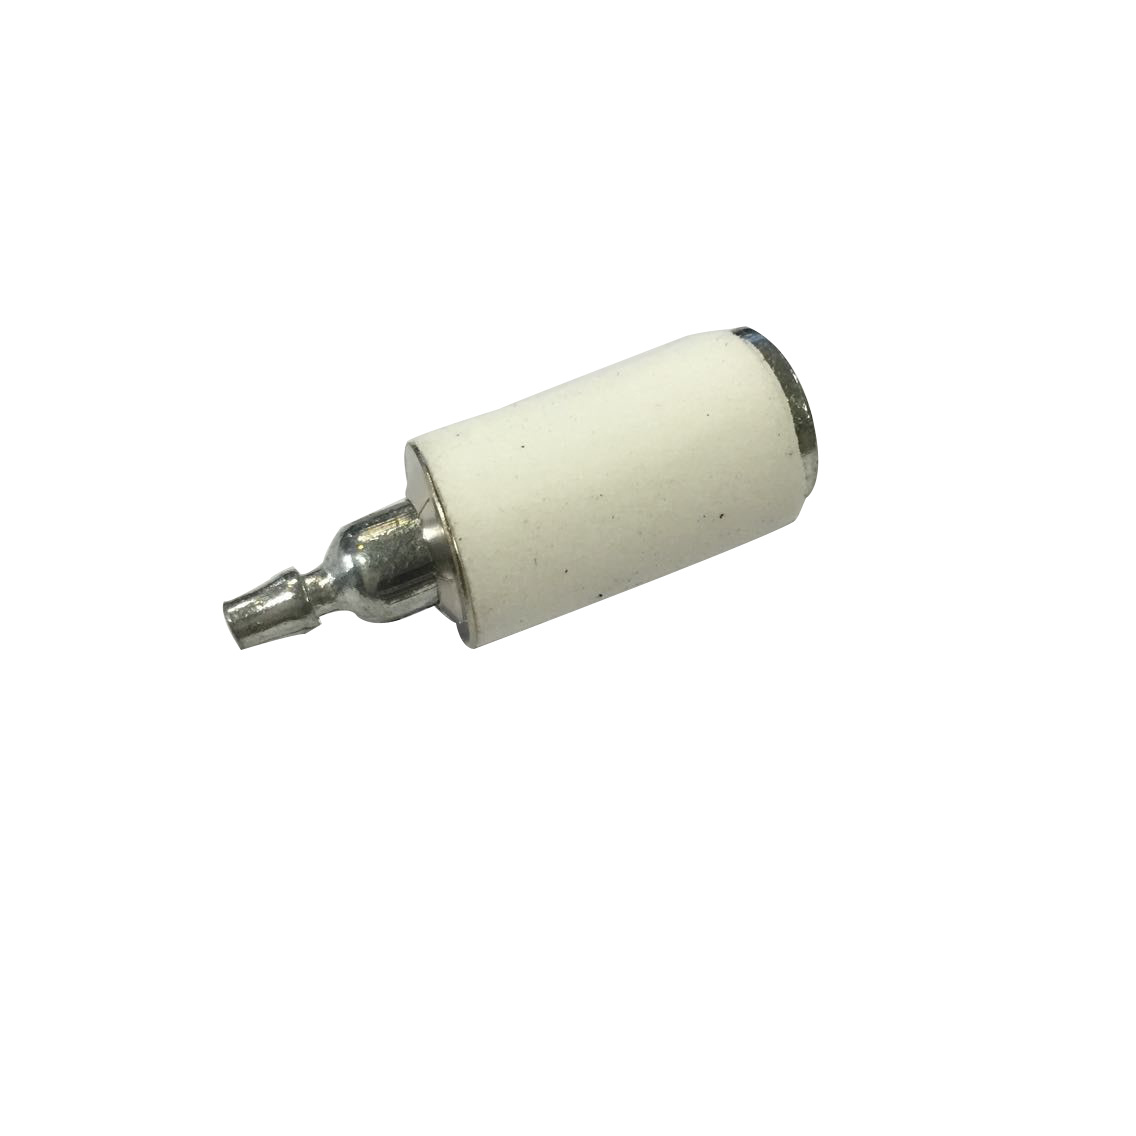 hight resolution of fuel filter 530095646 for husqvarna 124c 124l 125c 125e 125l 125ld 125ldx 125r 125rj 128c 128l 128ldx 128r engines carburetor craftsman poulan weedeater